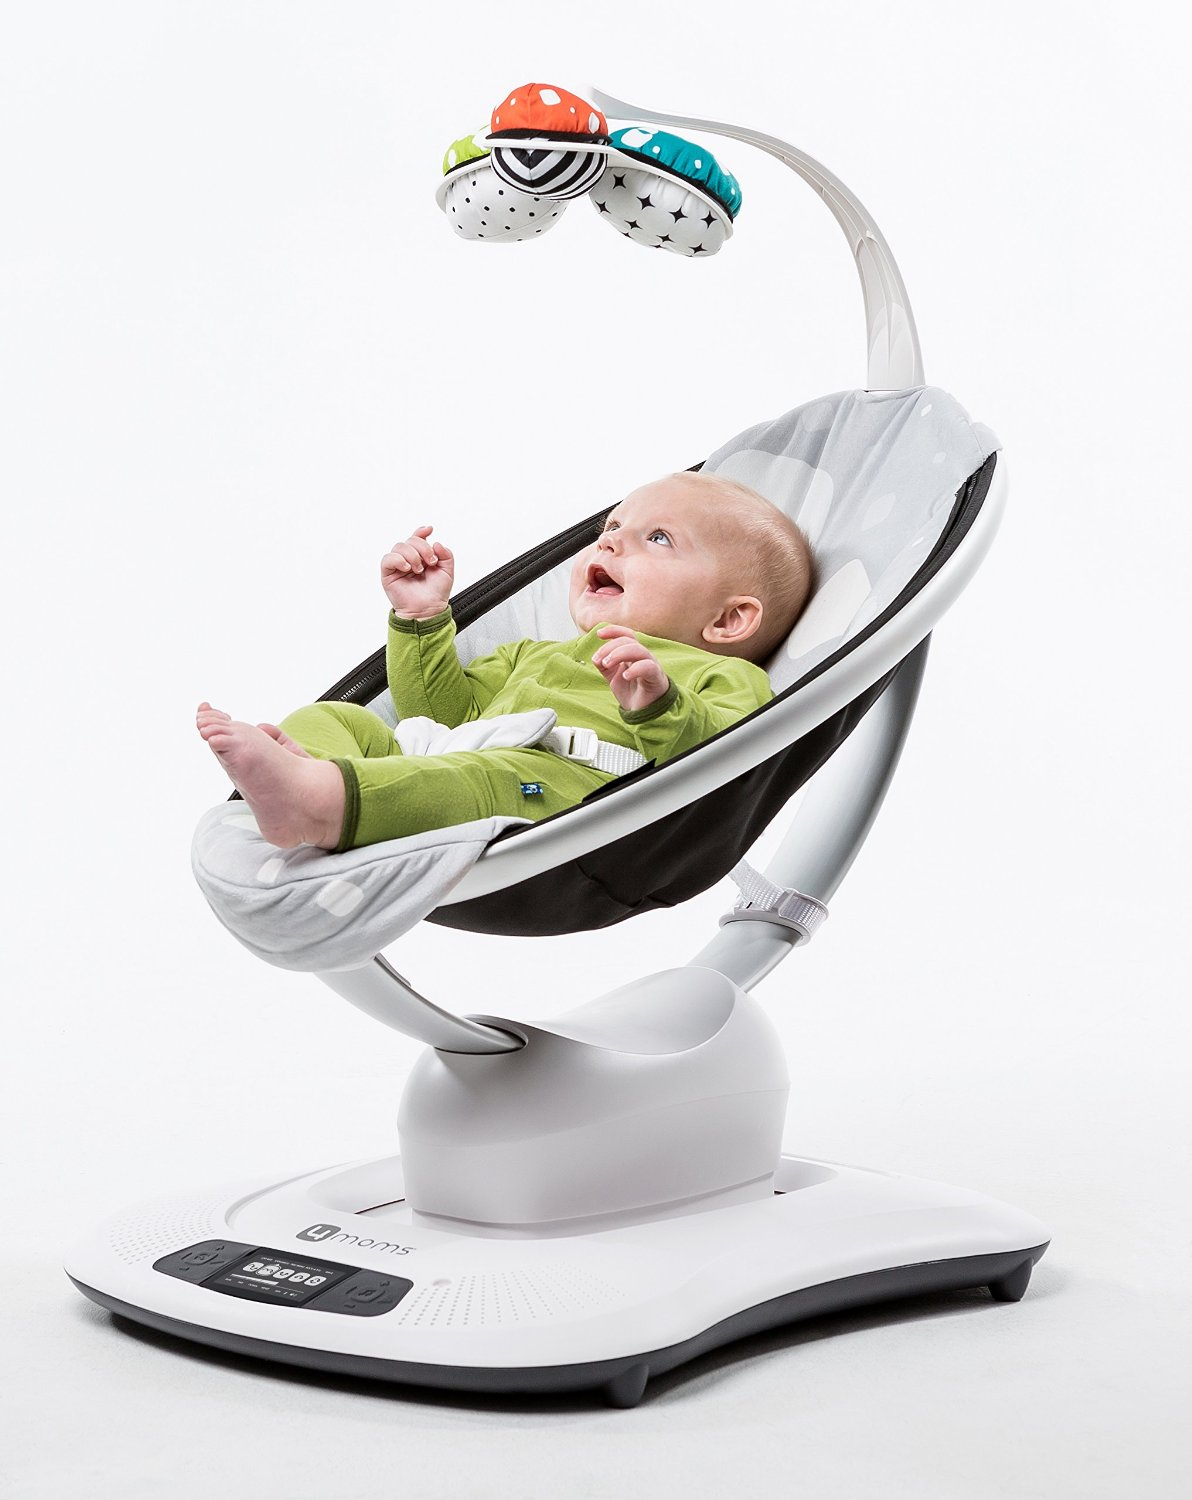 4Moms Mamaroo Bouncer